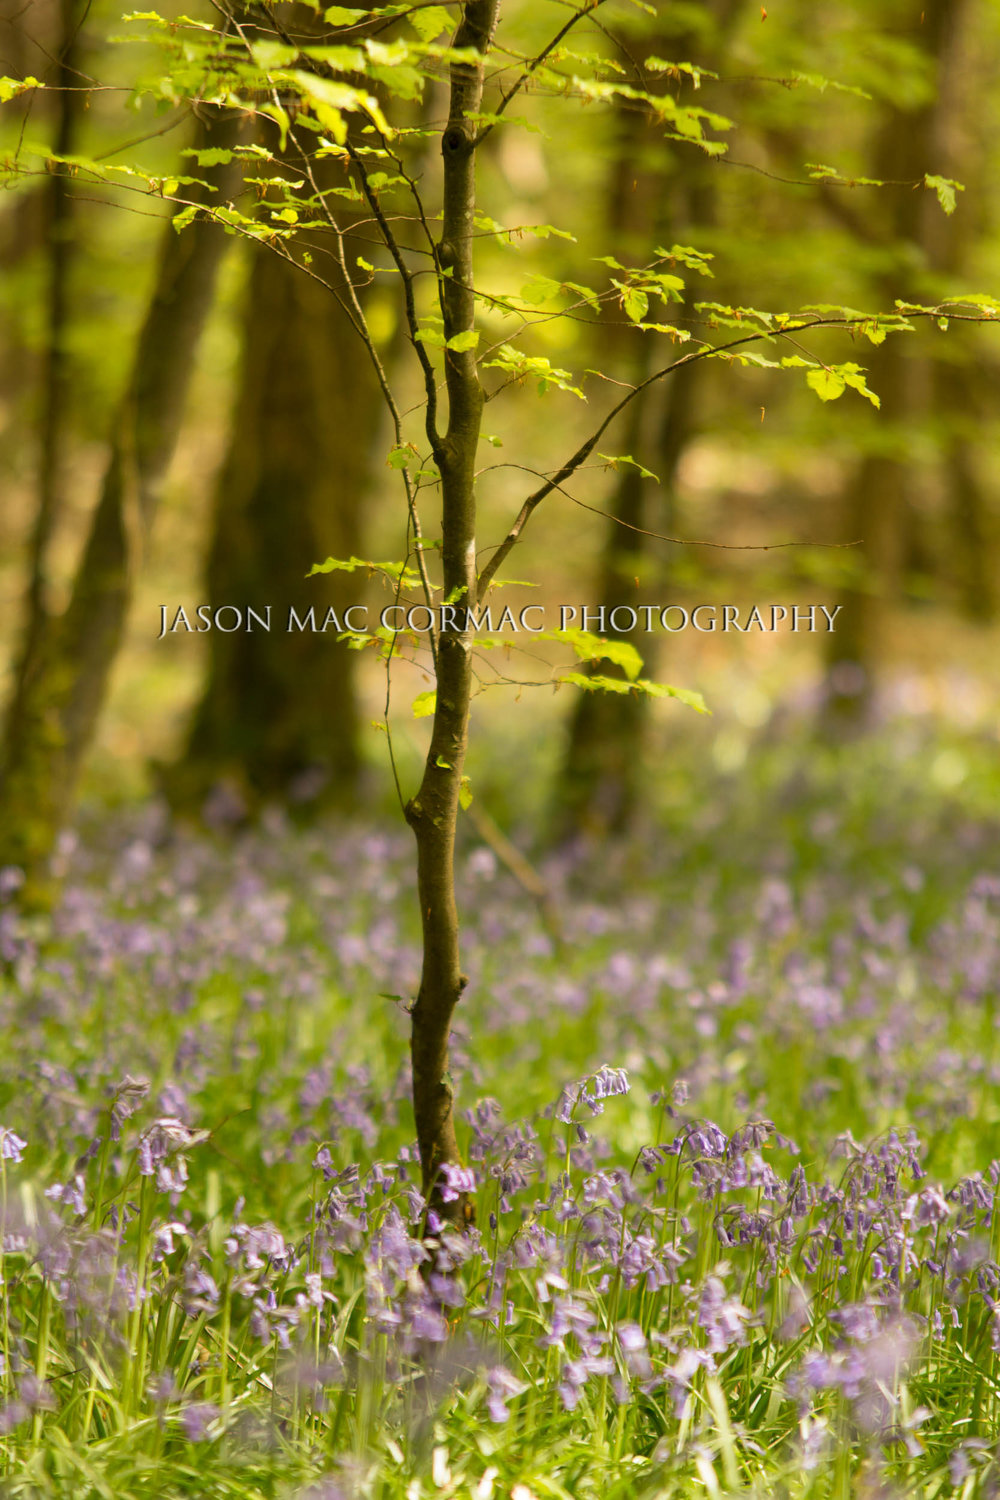 Bluebell wood - Dublin Photographer Jason Mac Cormac